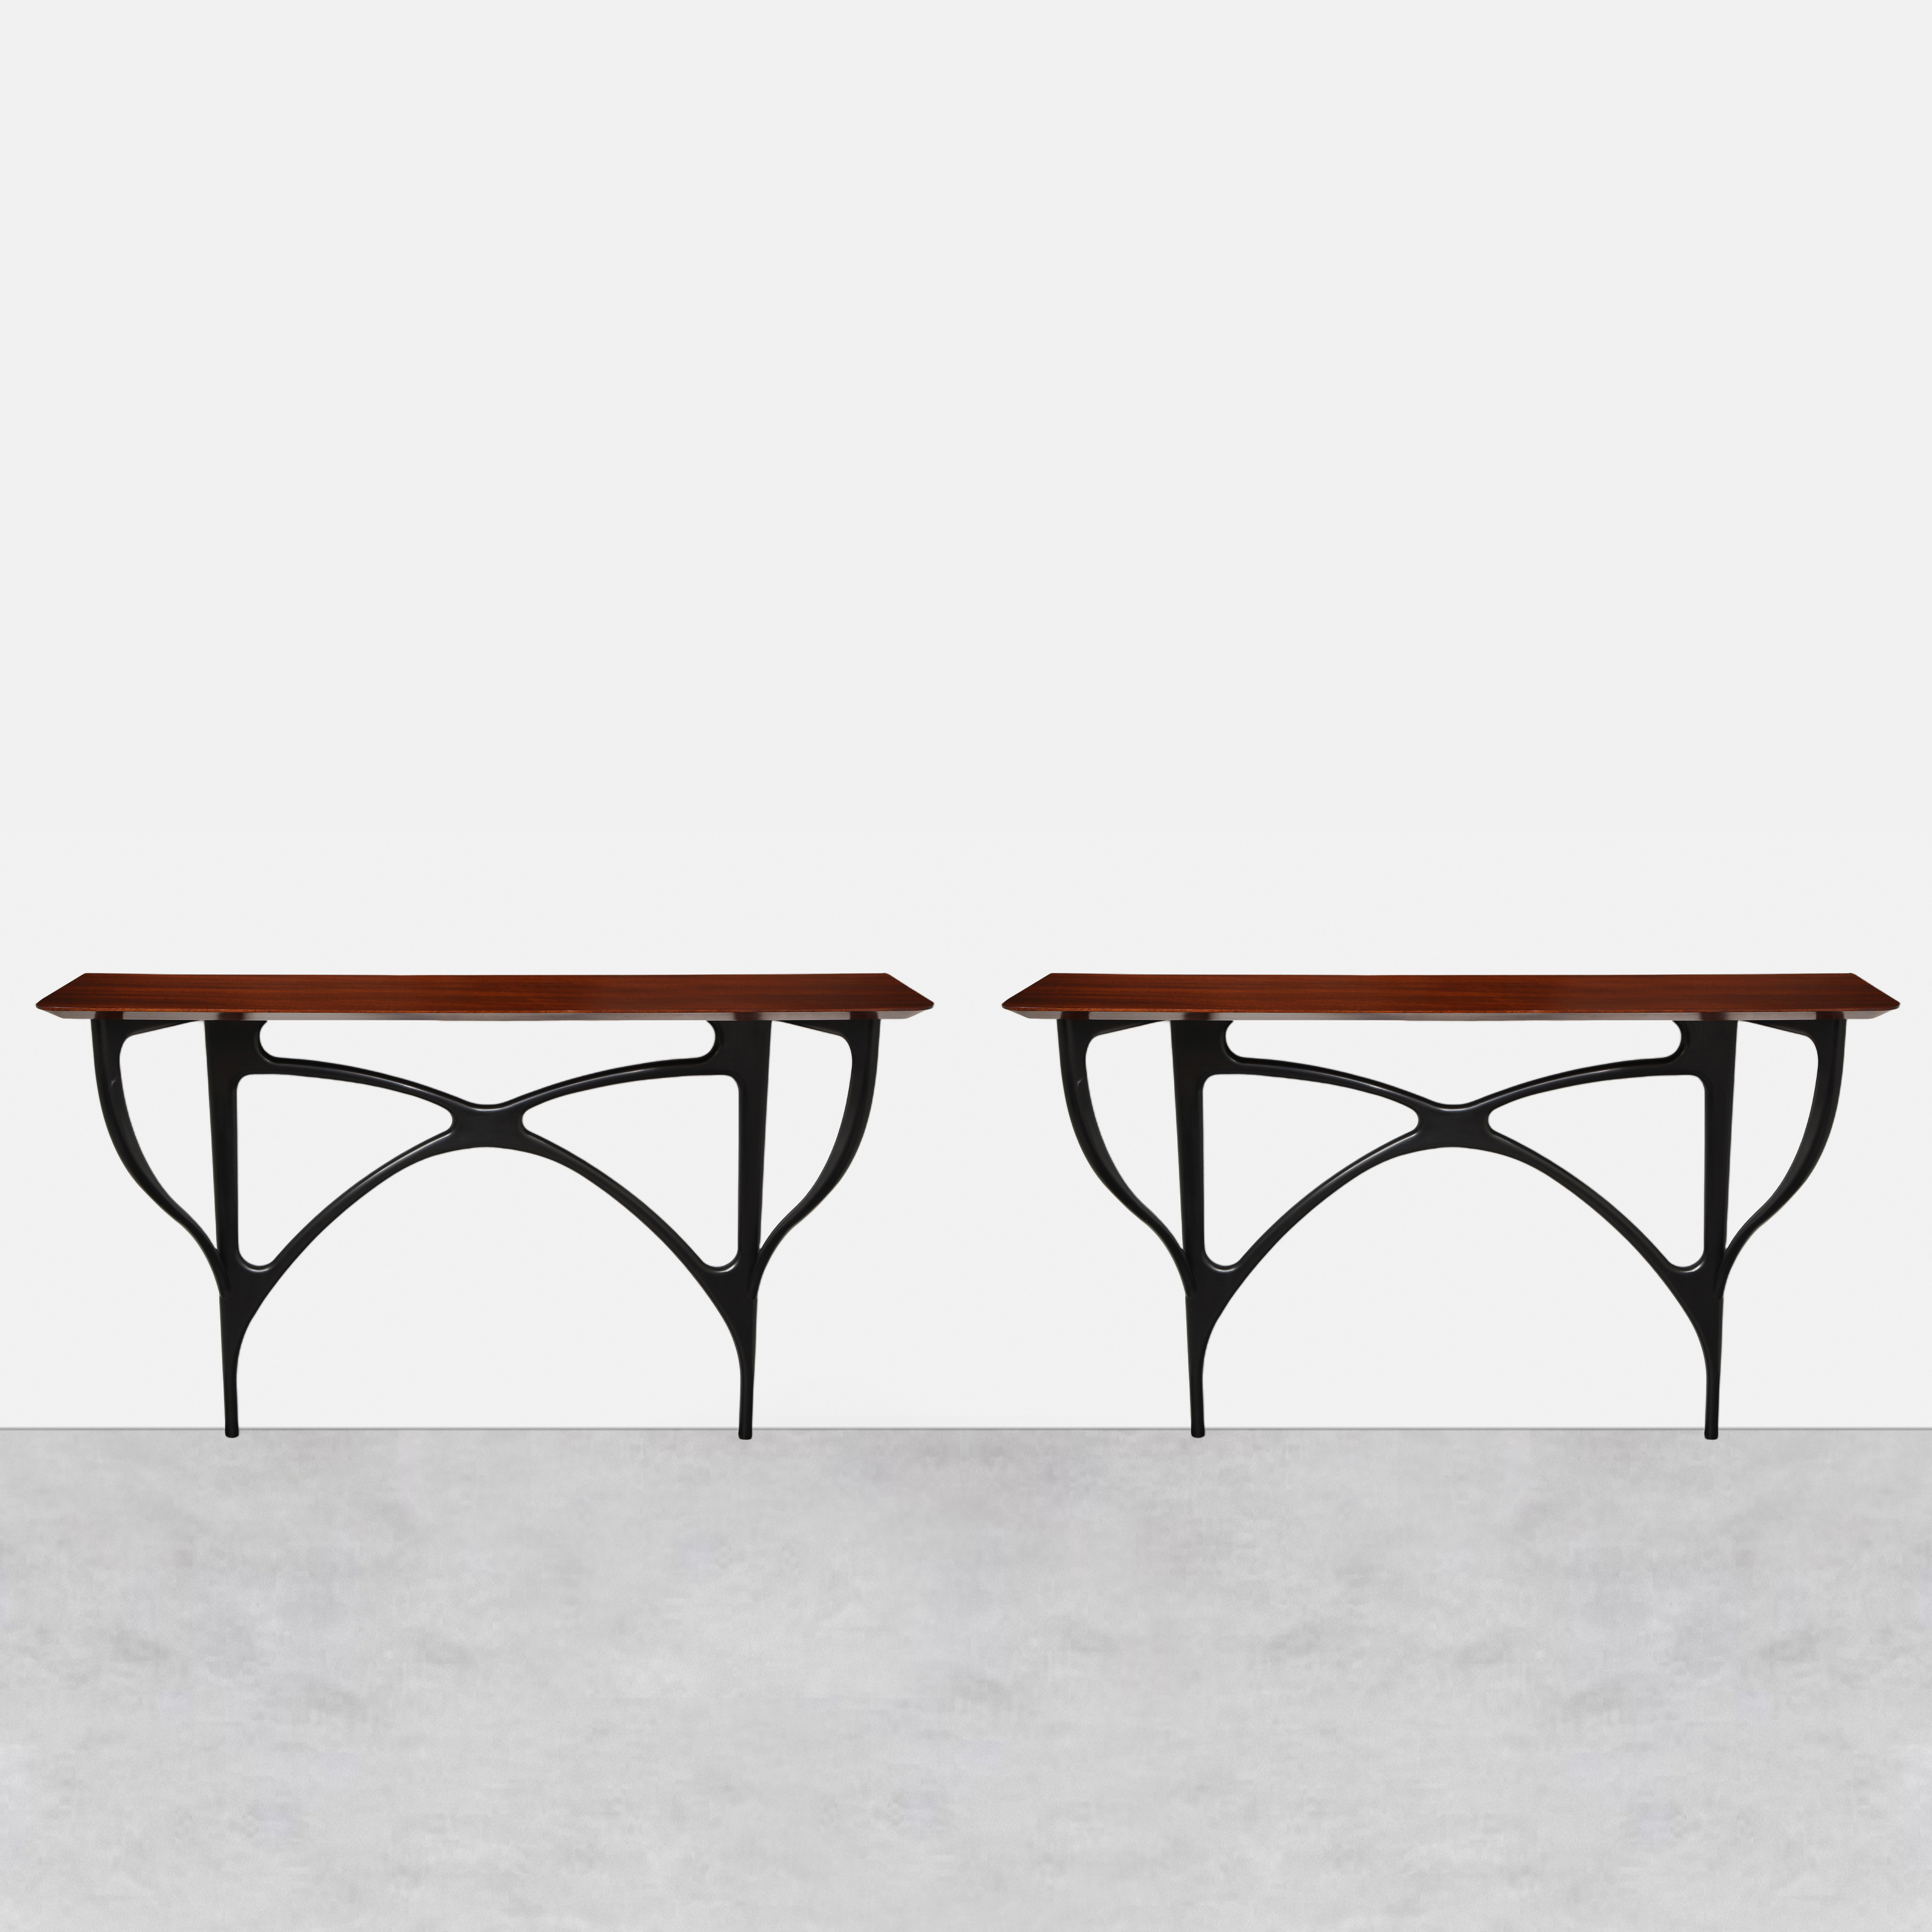 Pair of Consoles by Ico Parisi for ArteCasa | soyun k.